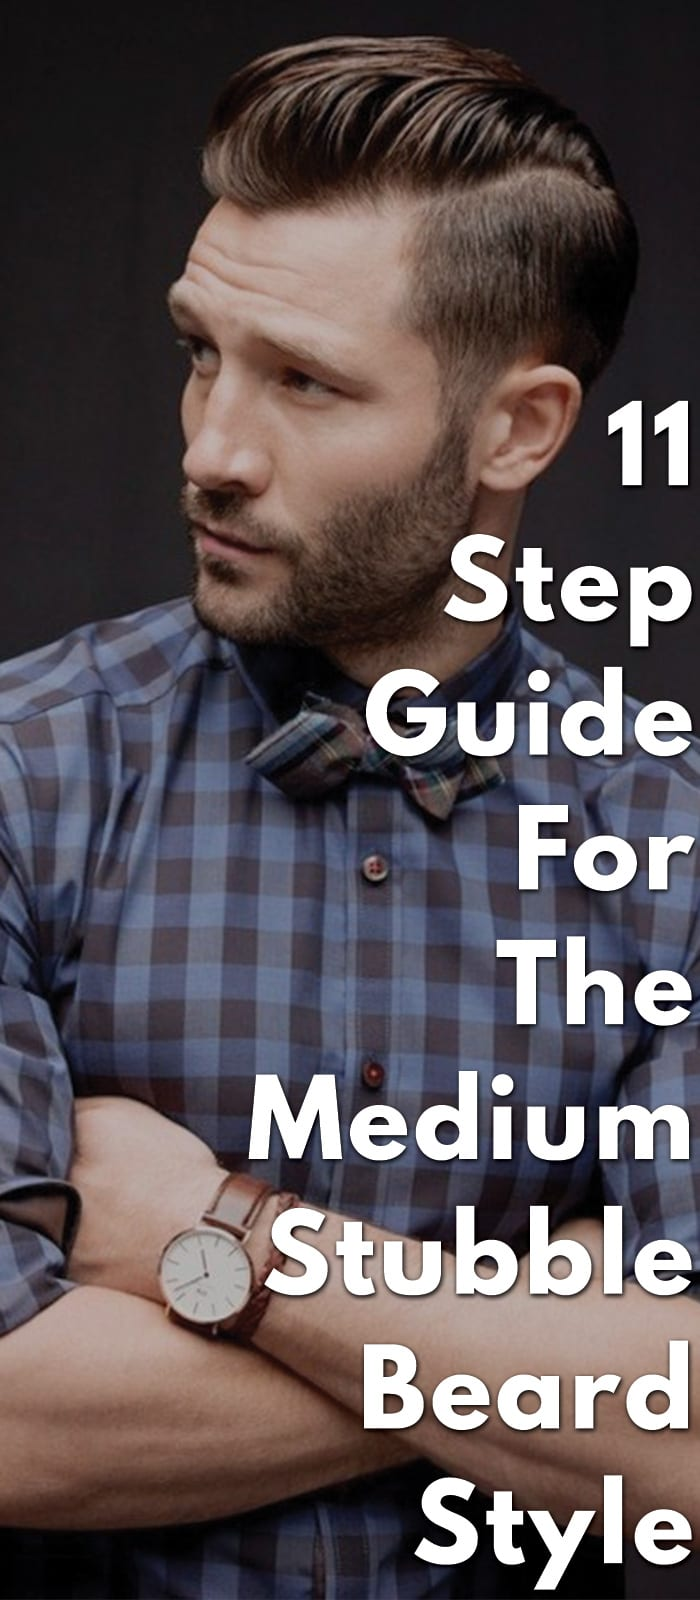 11-Step-Guide-For-The-Medium-Stubble-Beard-Style.